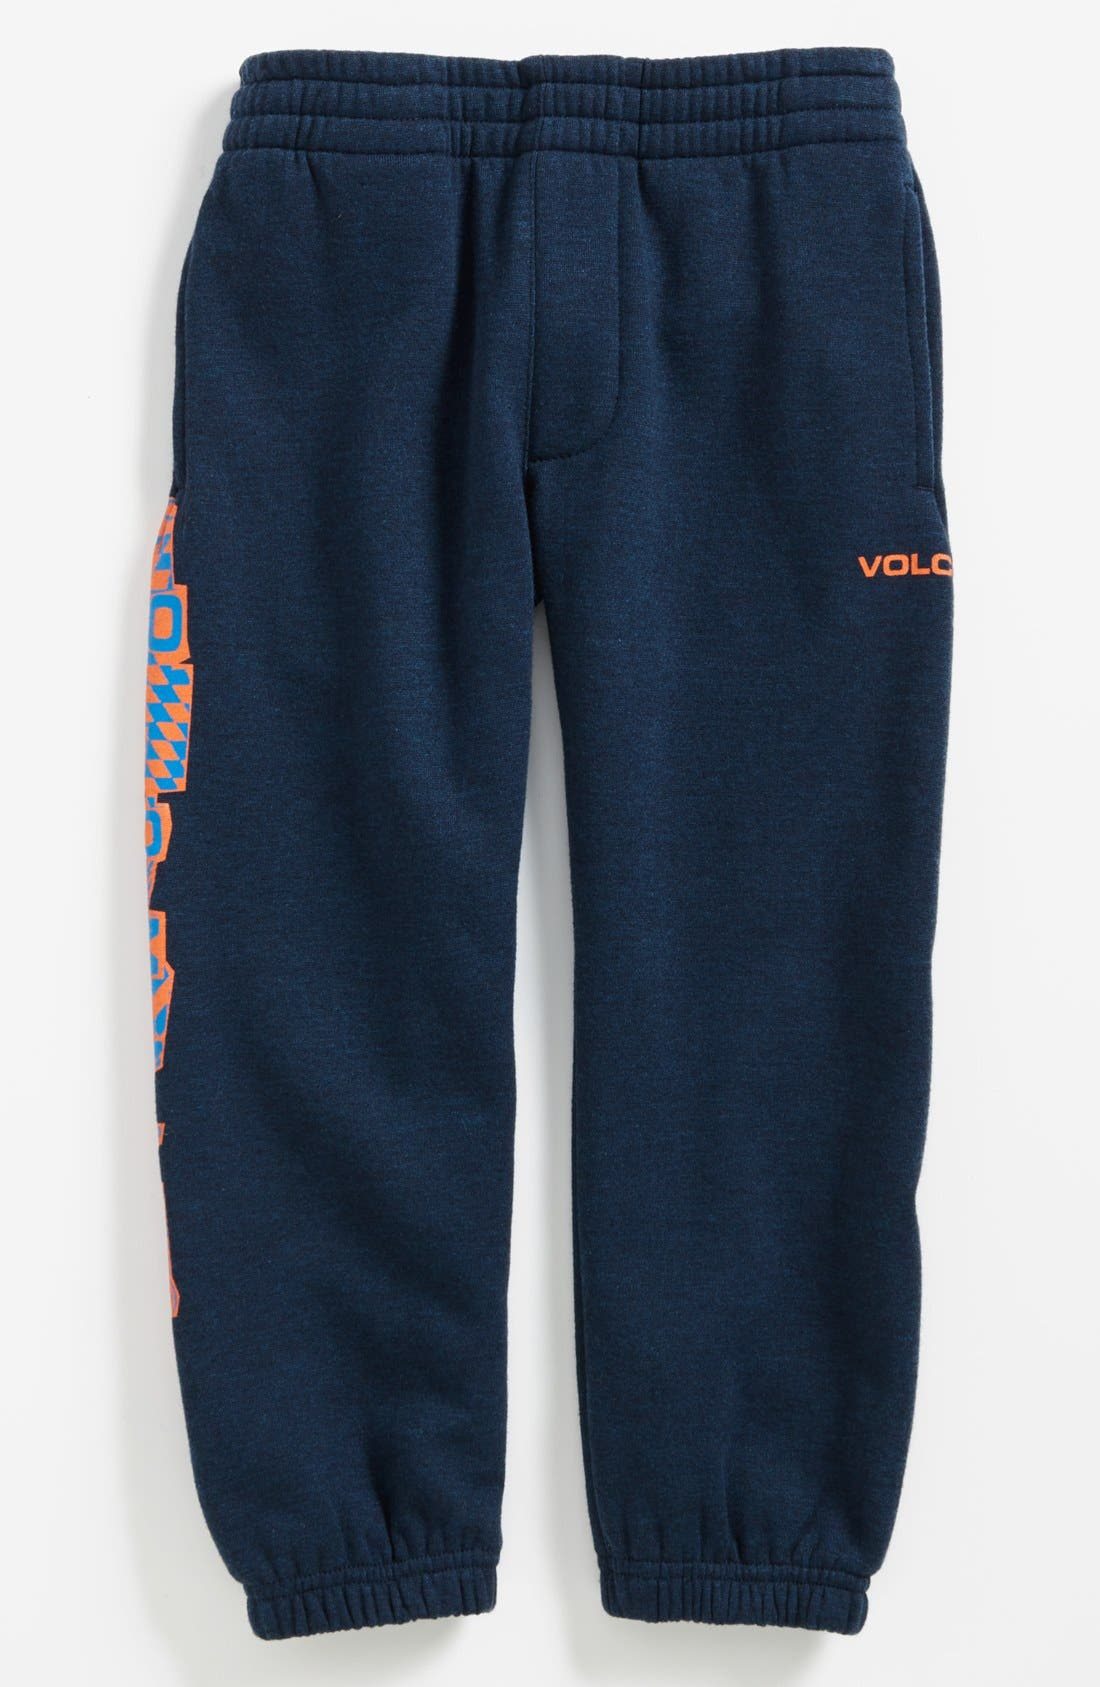 Alternate Image 1 Selected - Volcom 'Gigged' Sweatpants (Little Boys & Big Boys) (Online Only)